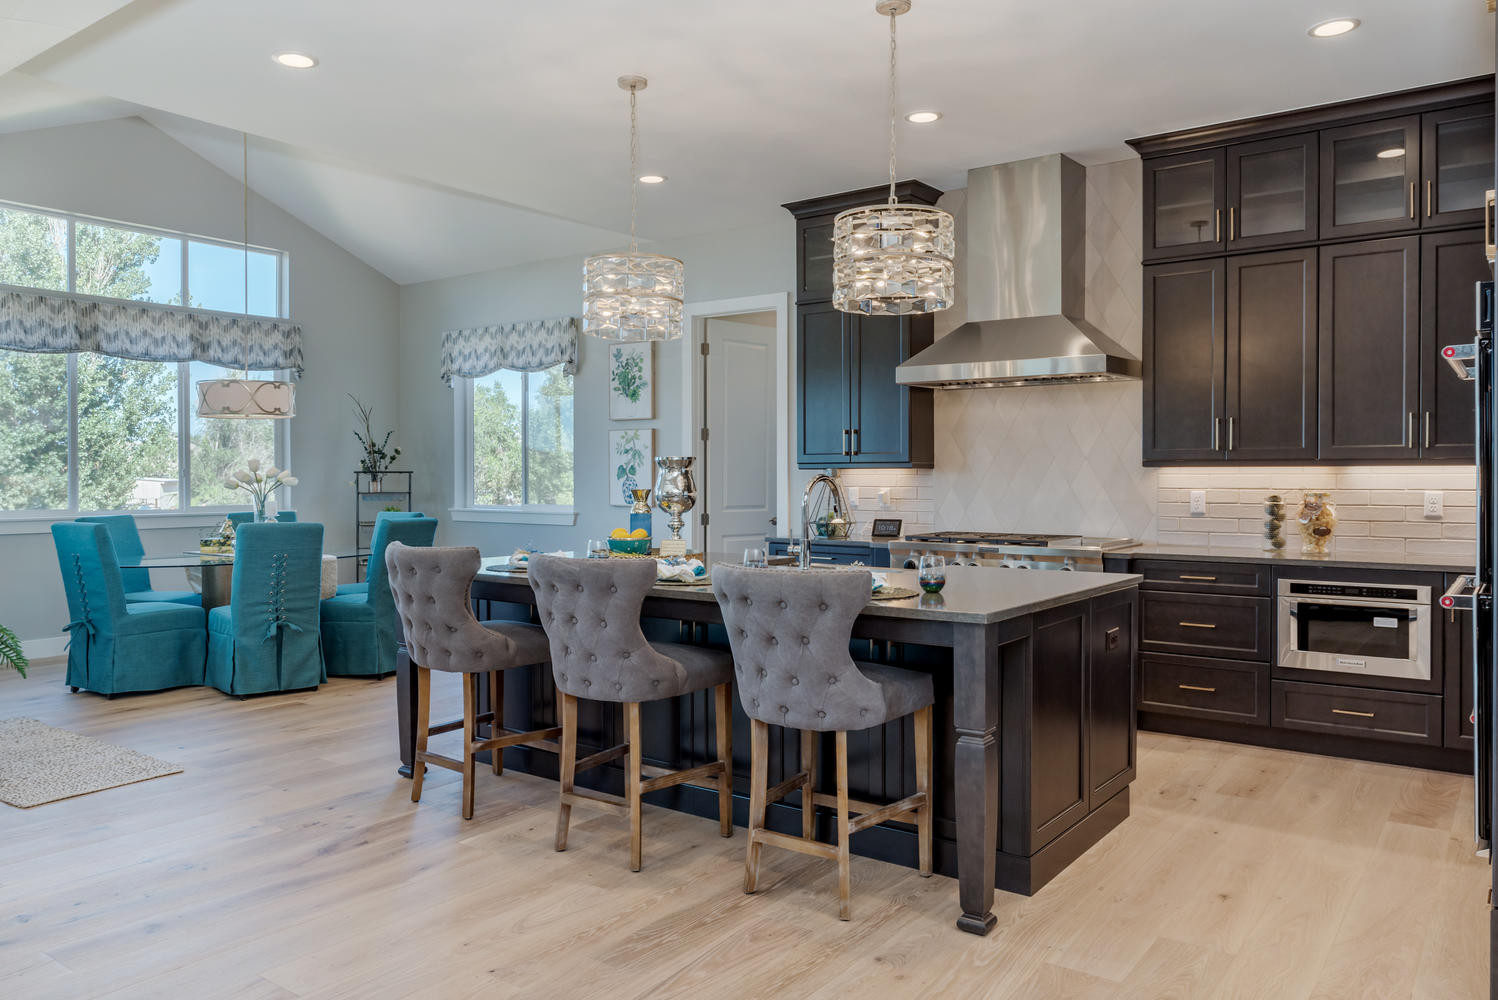 Large Gourmet Kitchen and Breakfast Nook